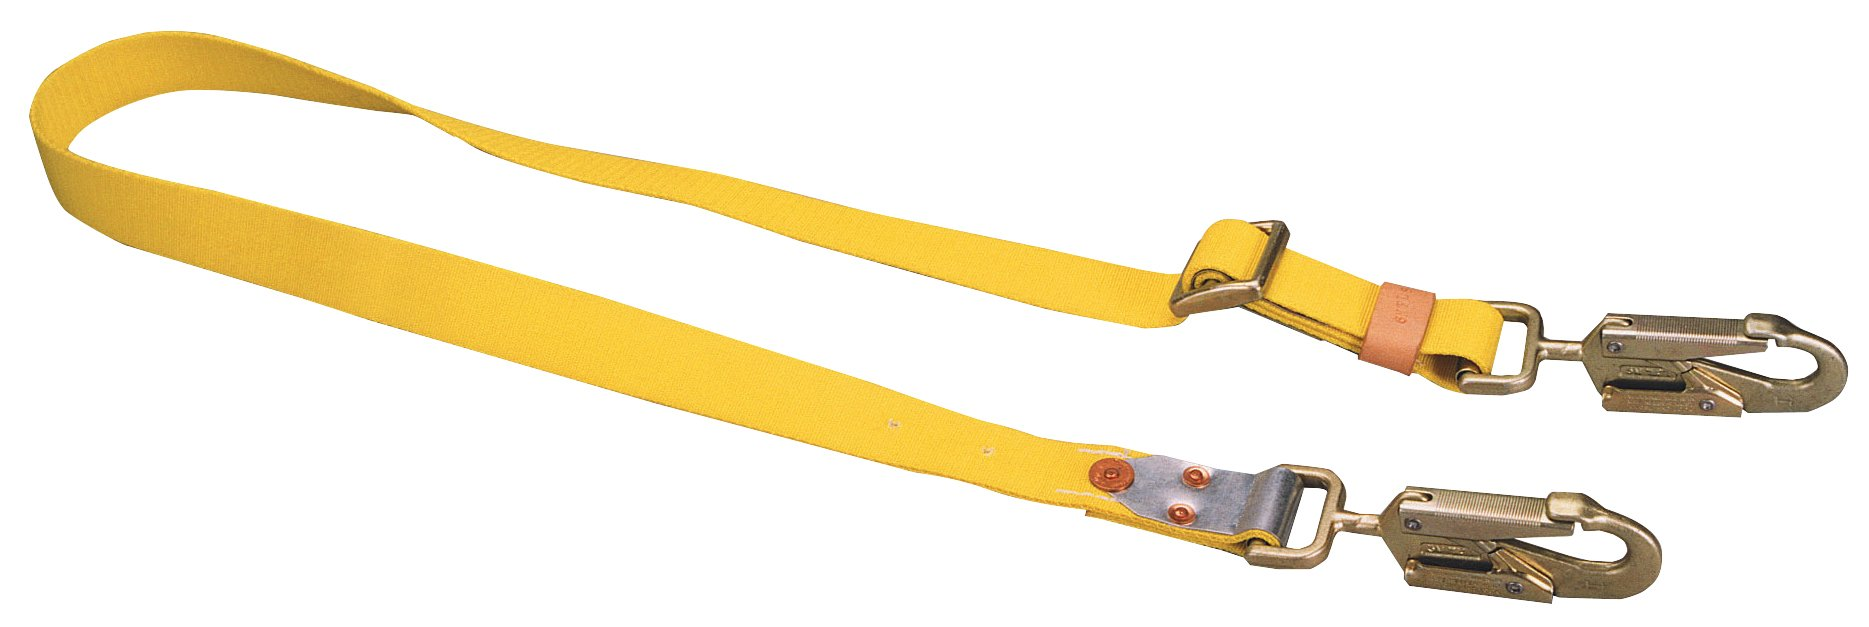 Miller by Honeywell 6NFLS/6FTYL Safety Strap Nylon Front Buckle, 6'